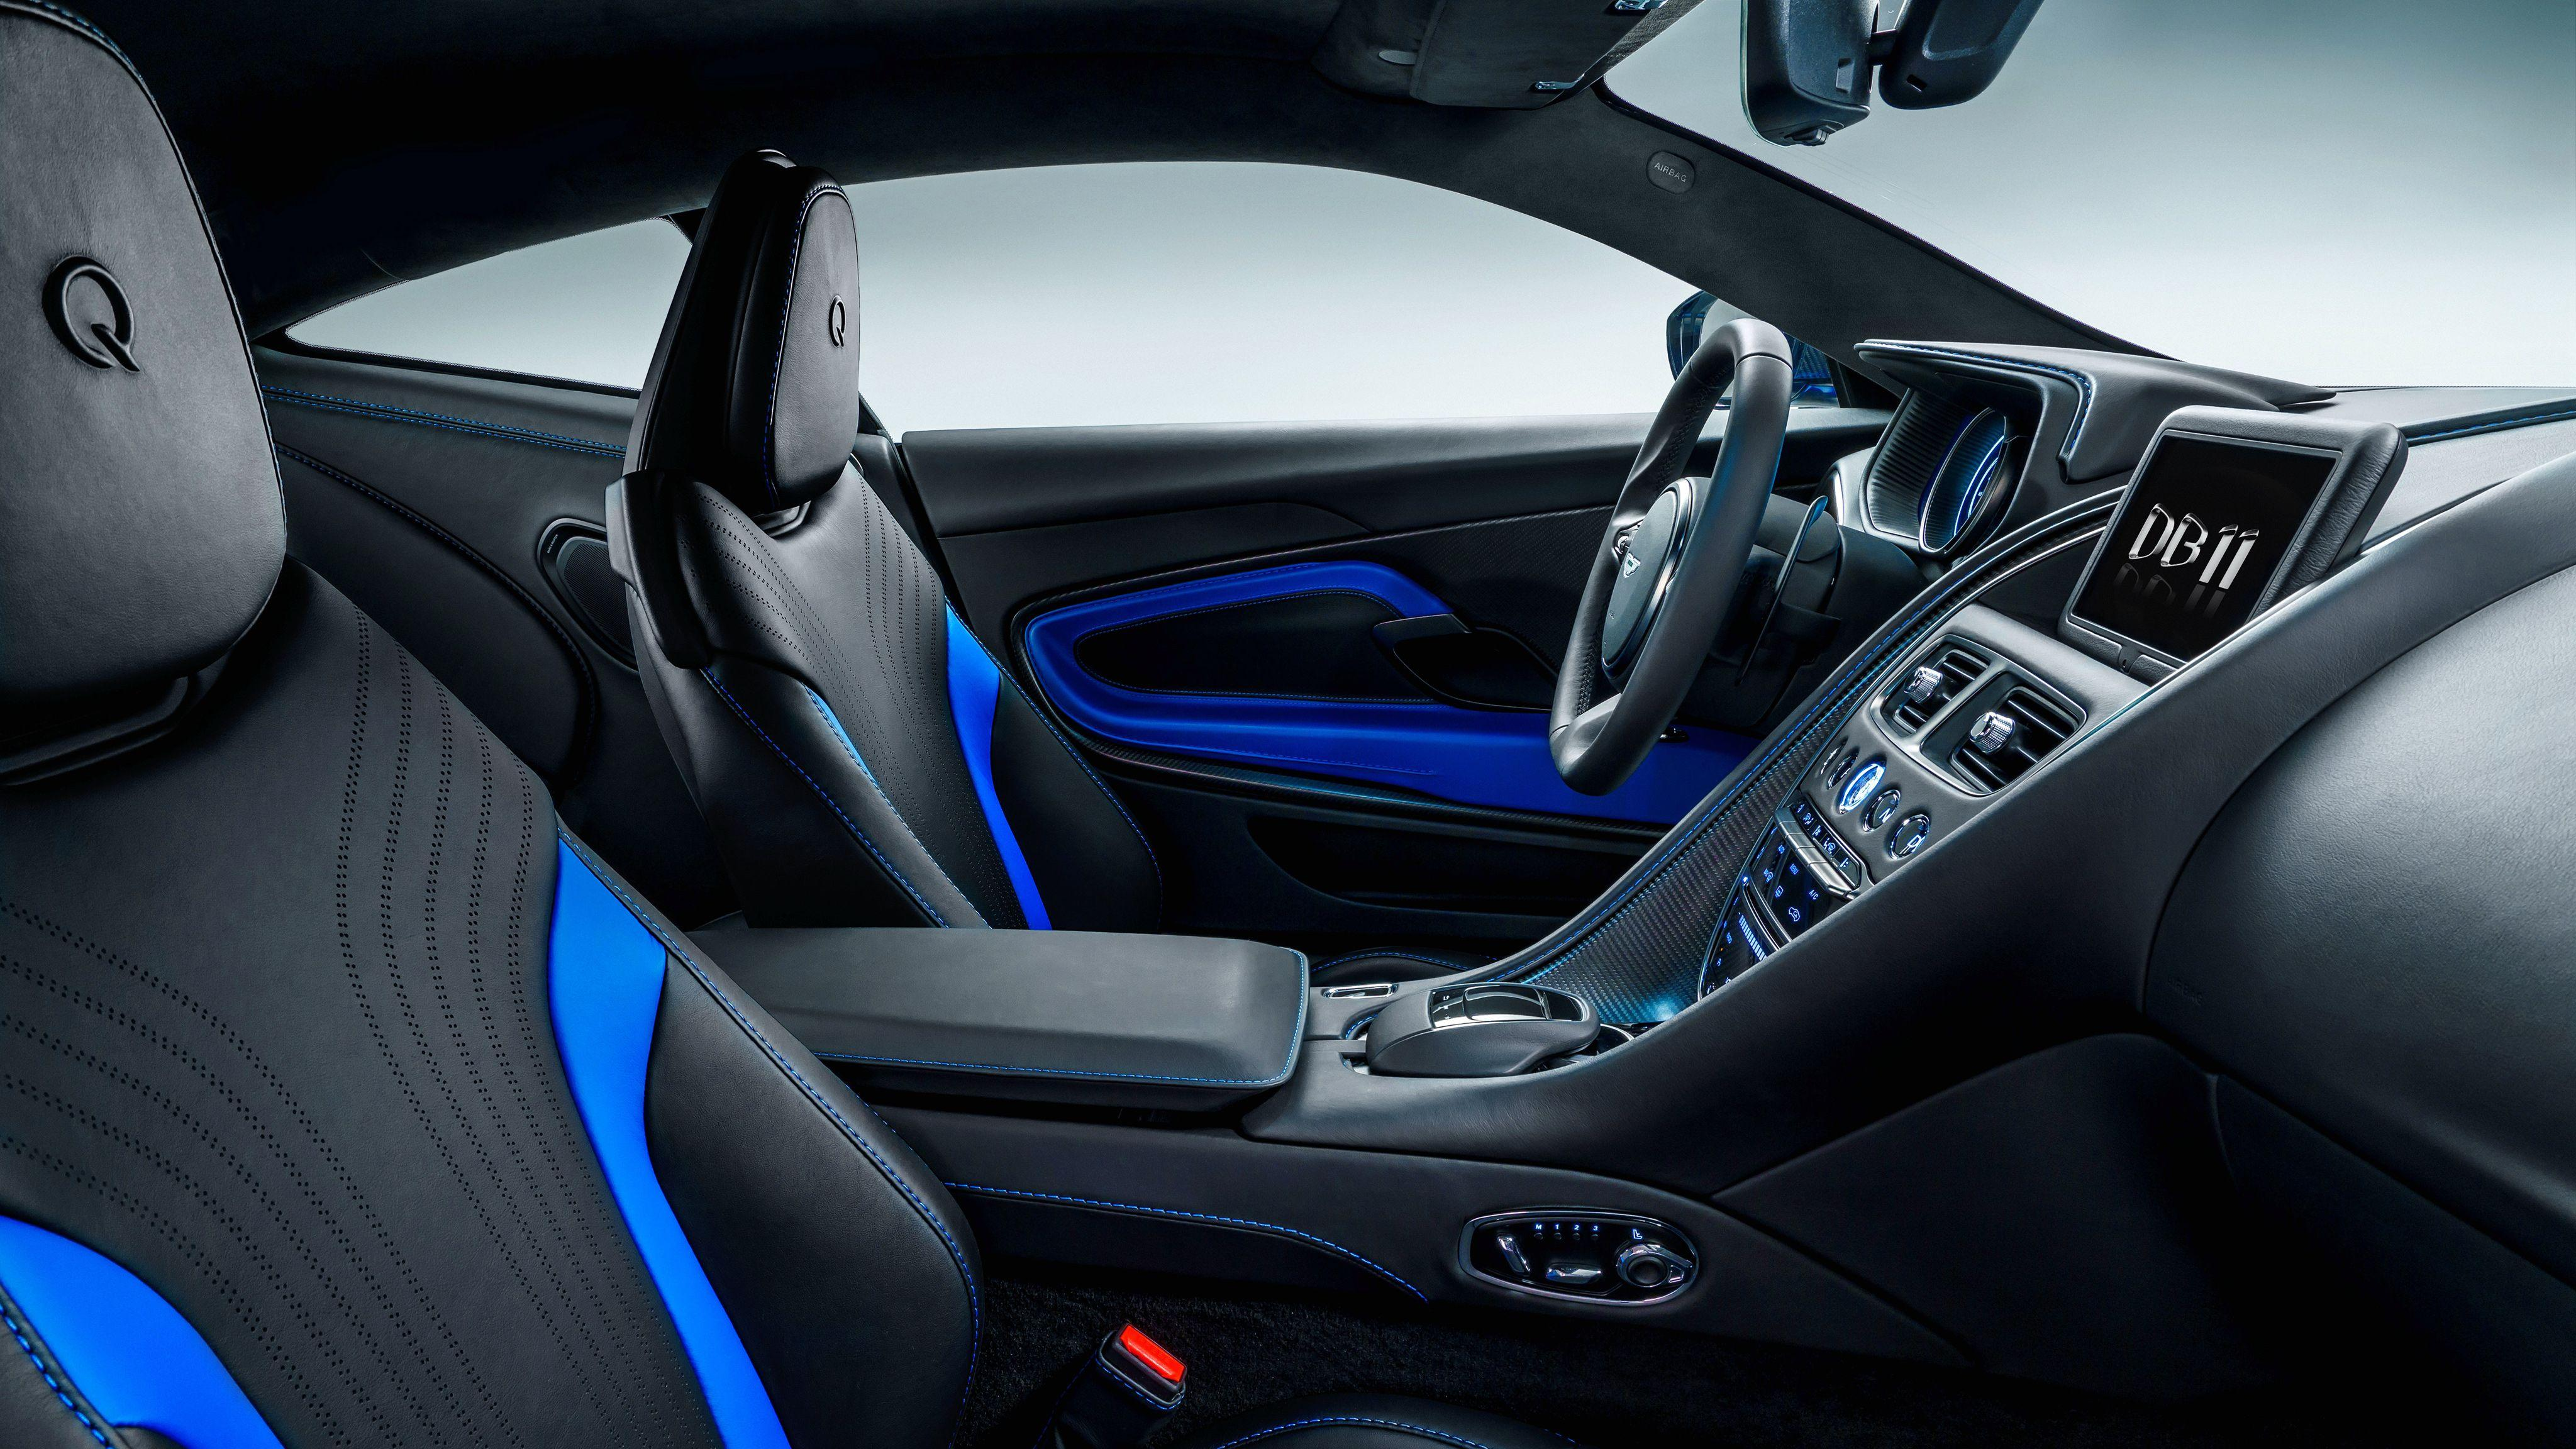 2017 Q by Aston Martin DB11 Interior Wallpapers